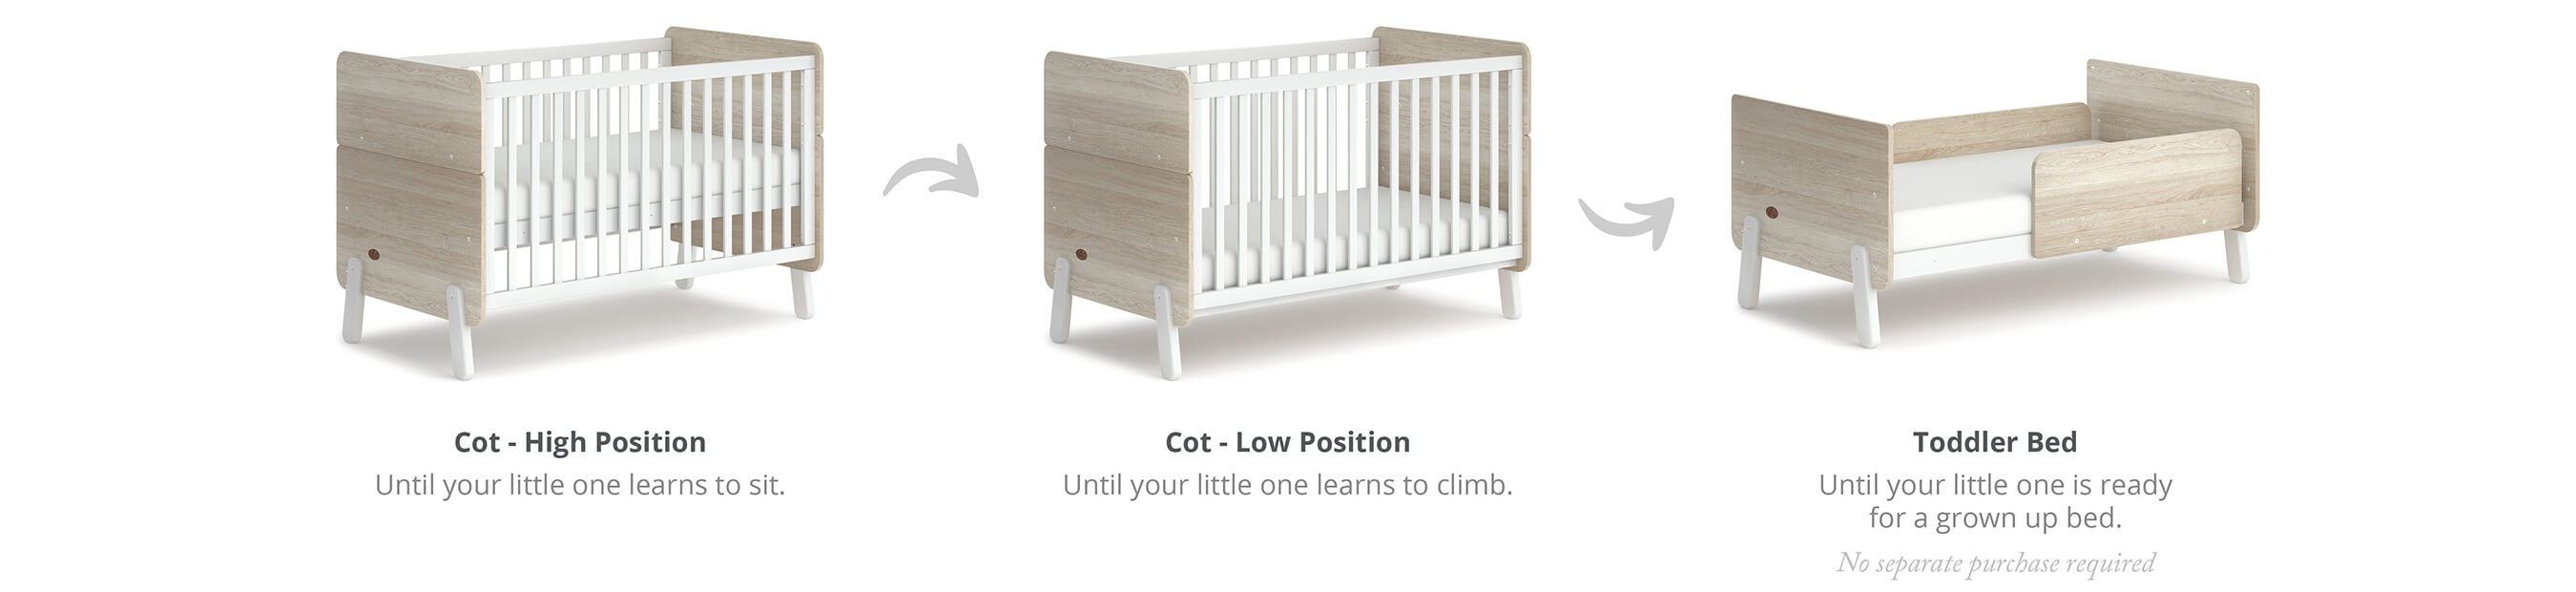 Feature_Highlights_Cot_Beds_033